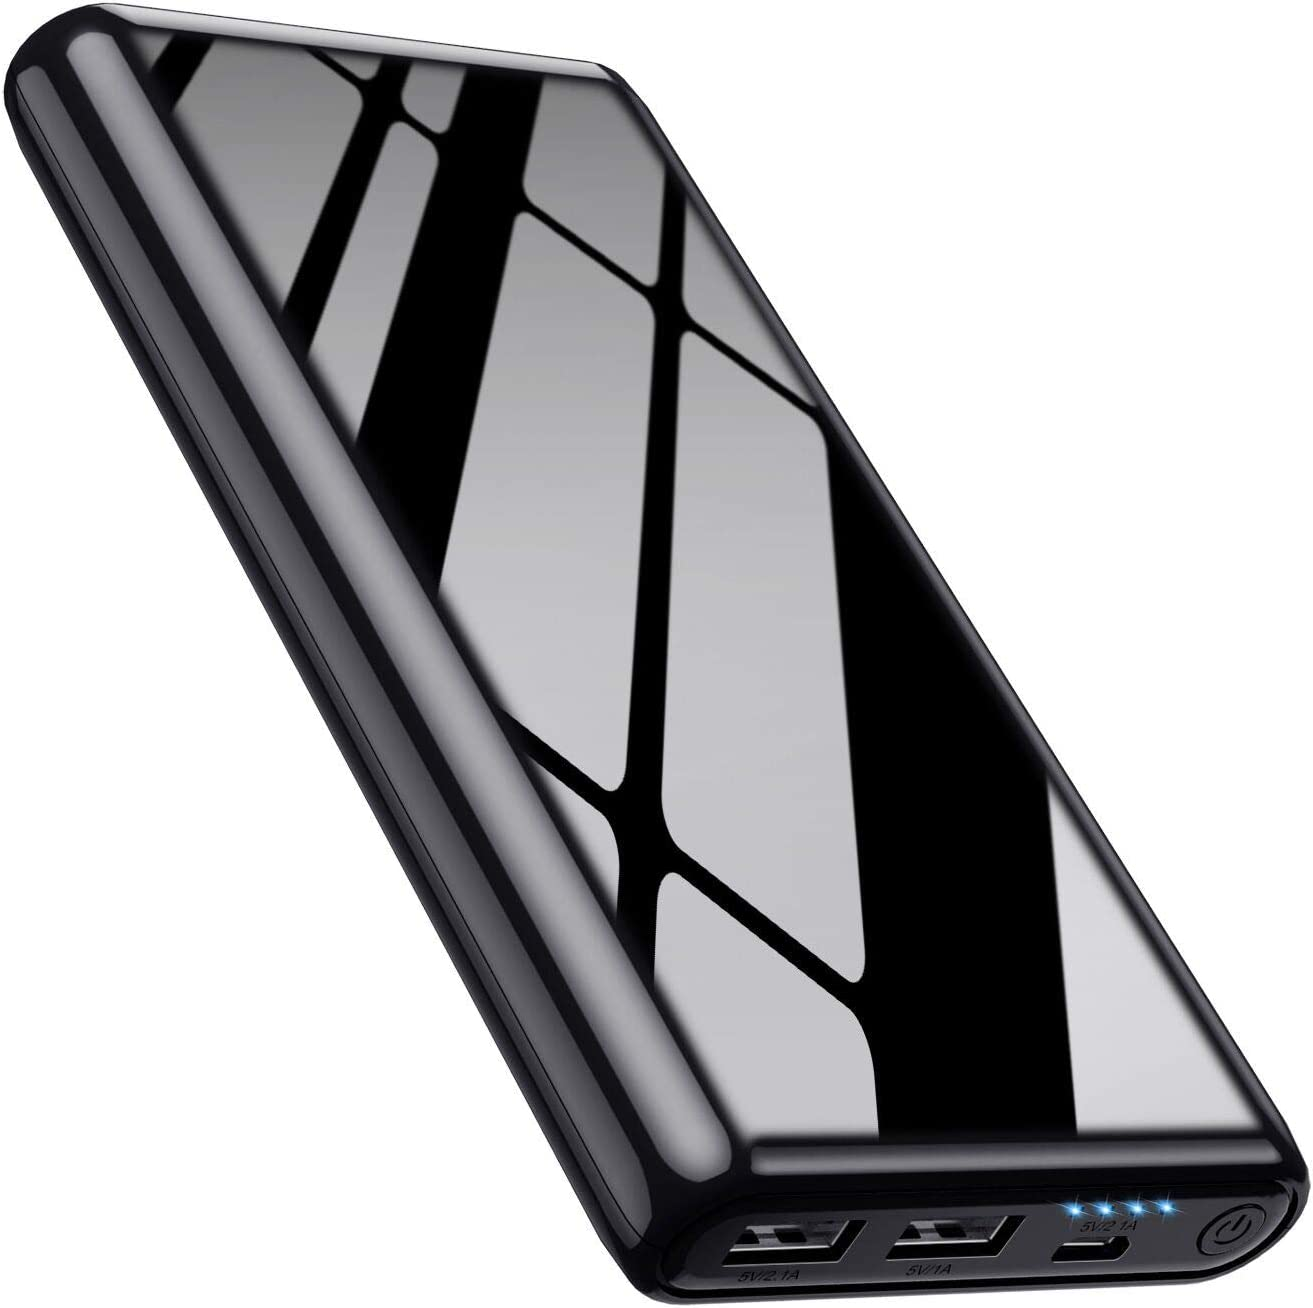 Portable Charger Power Bank 25800mAh Ultra High Capacity High Speed Recharging External Battery Pack 2 USB Output with 4 LED Display Battery Phone